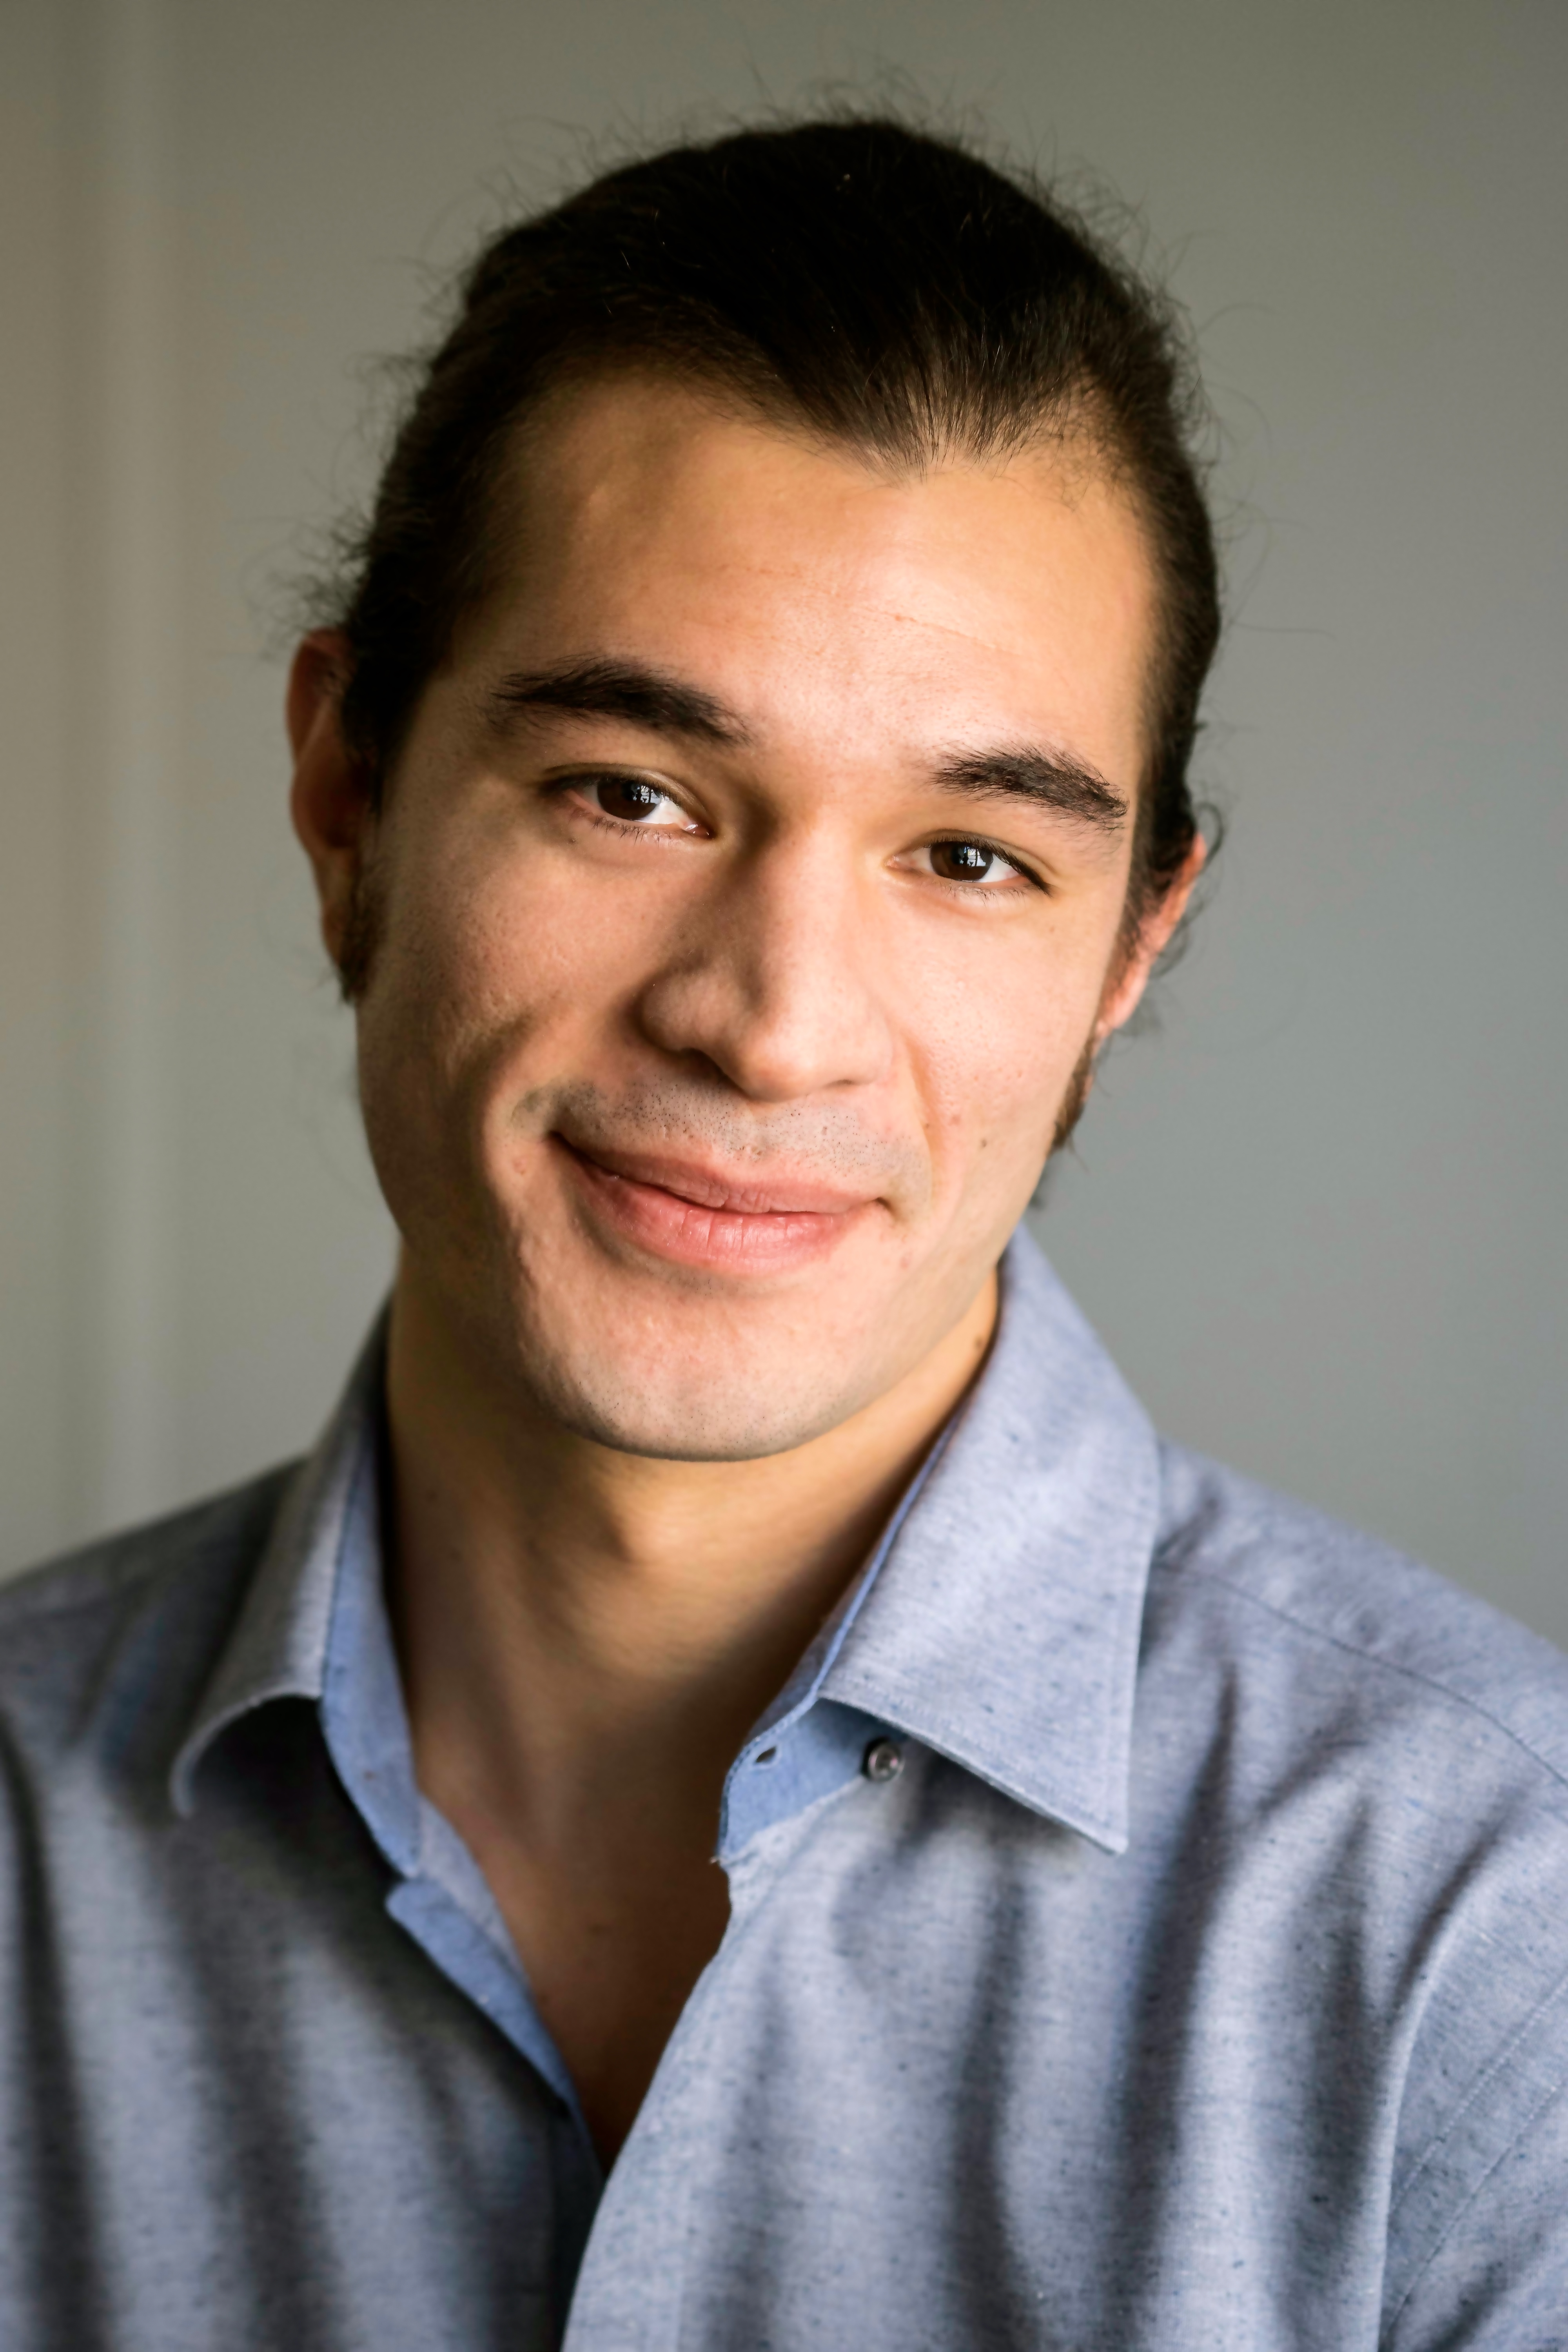 Michael Keoni DeFranco, founder and CEO at Lua